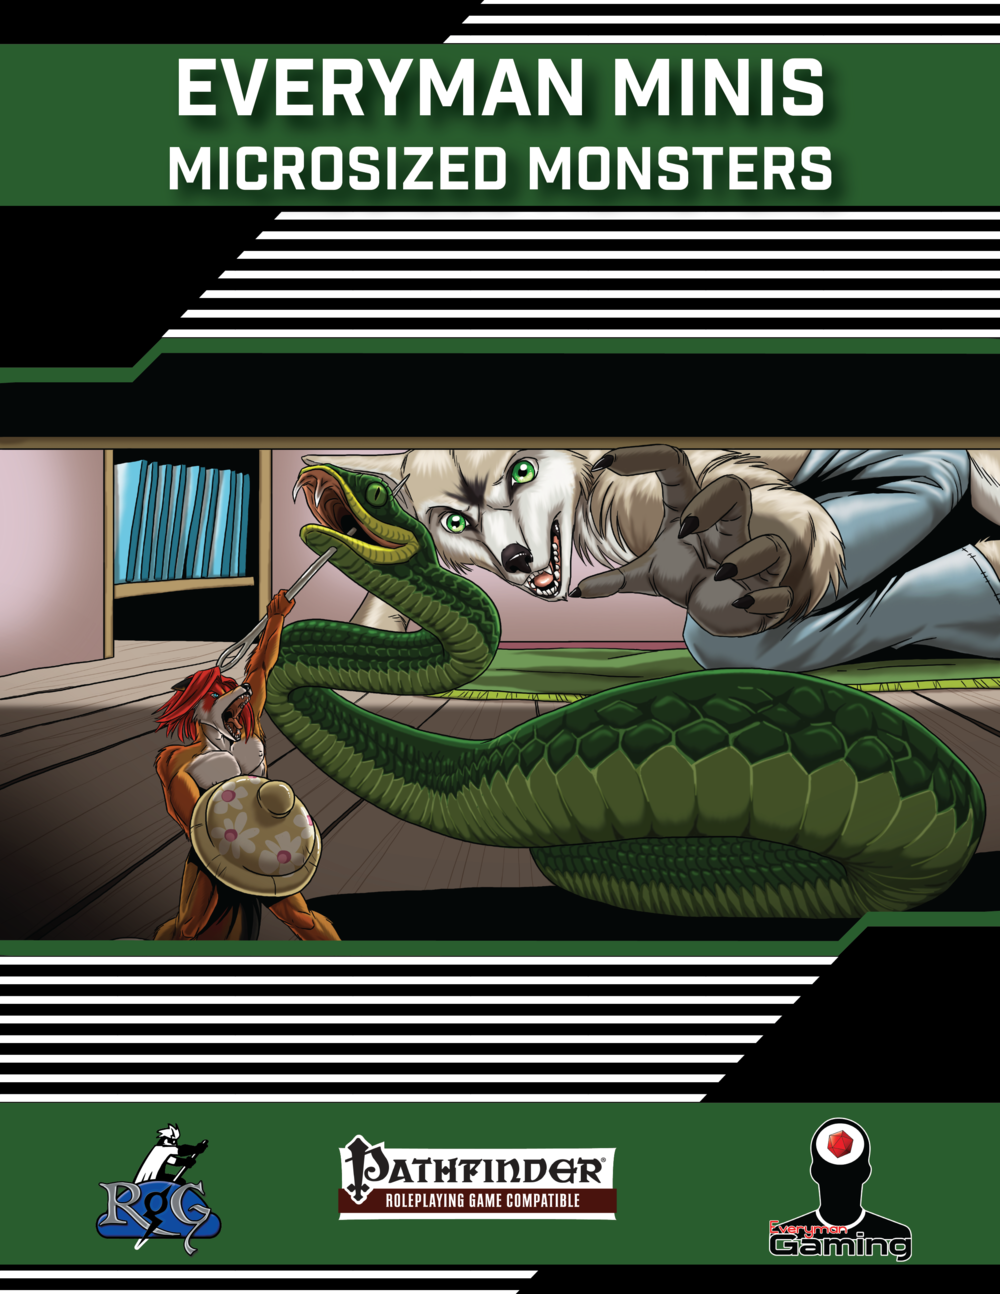 Everyman Minis: Microsized Monsters